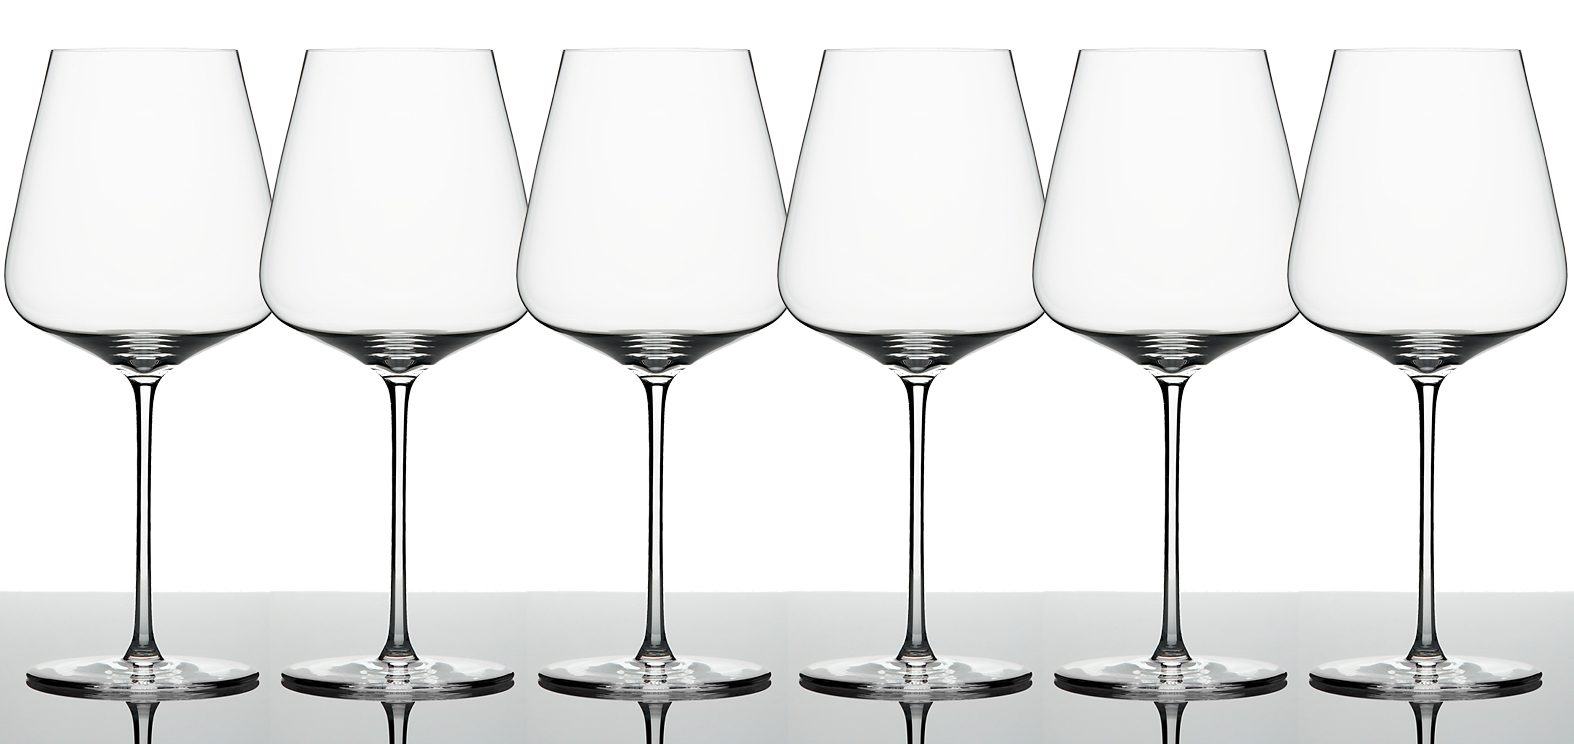 Zalto Denk Art Bordeaux-Glas 6er-Set